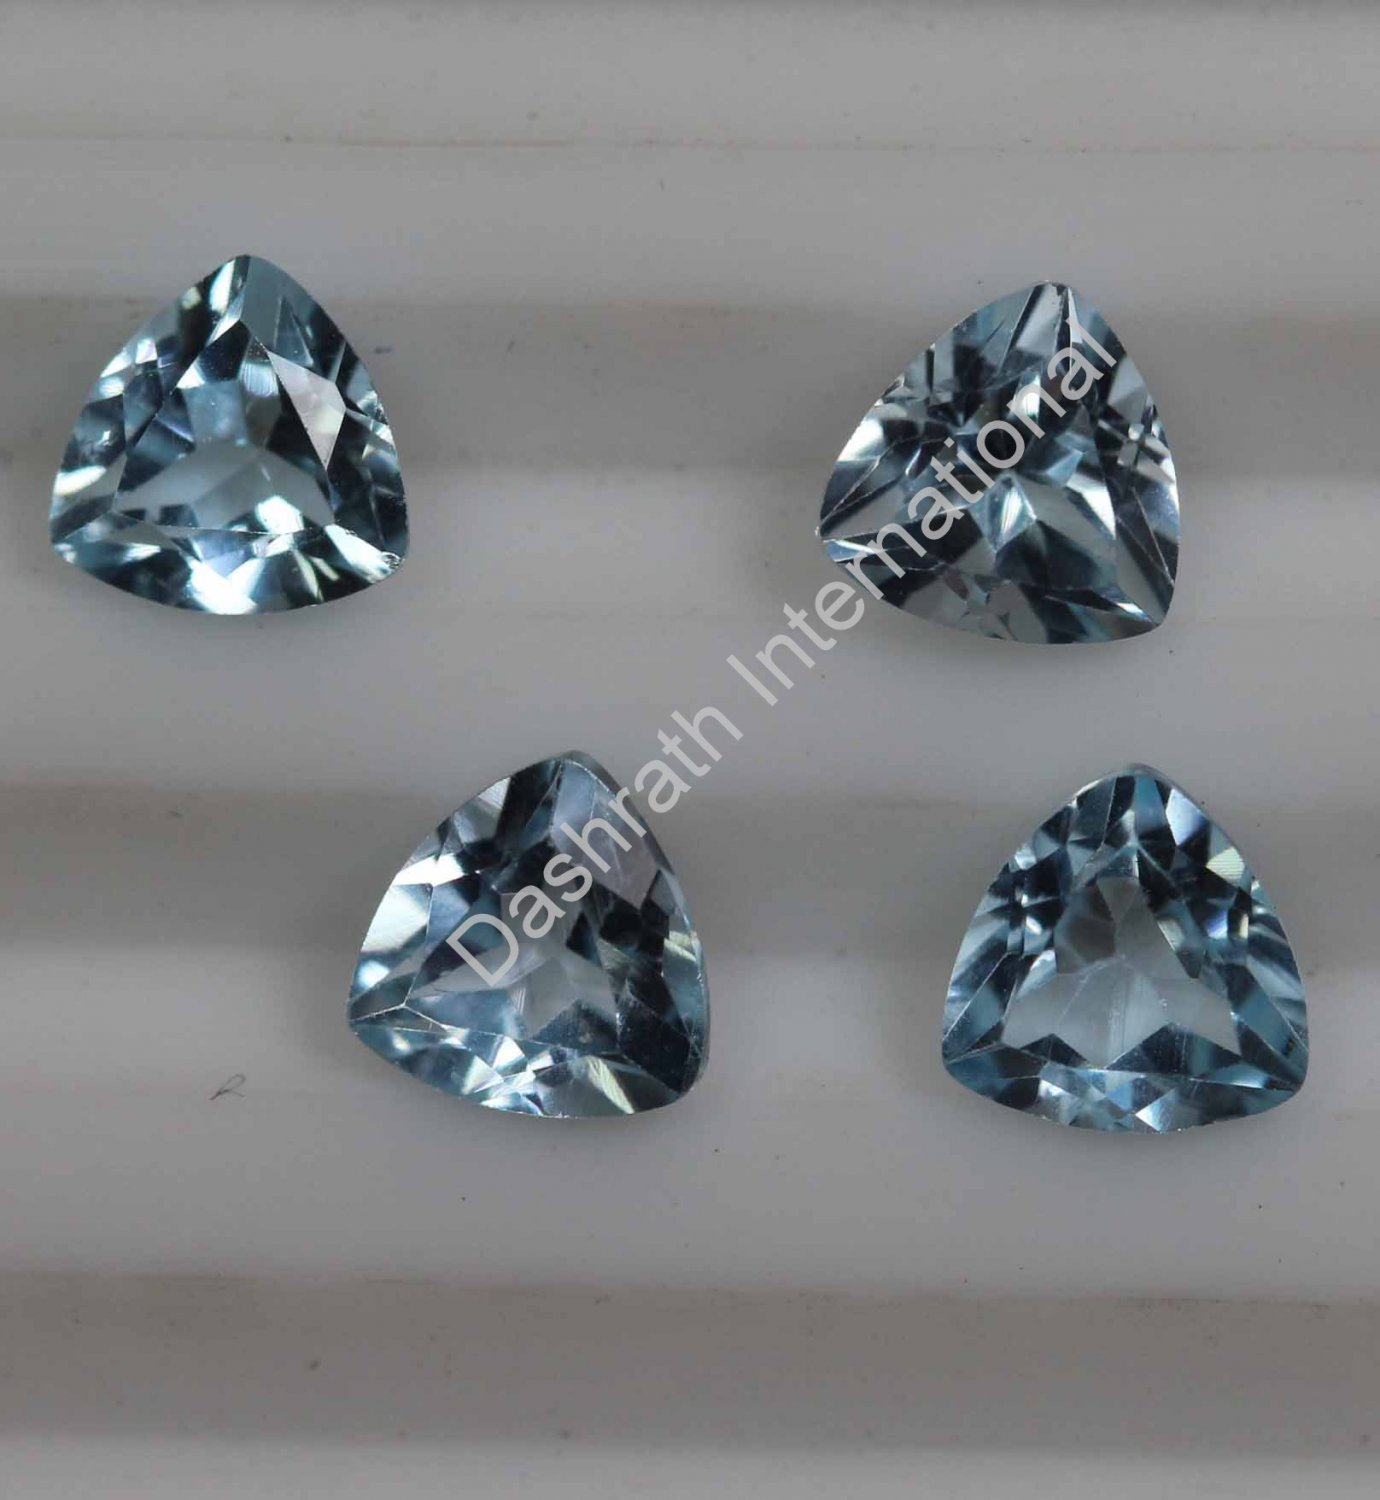 6mm Natural Sky Blue Topaz Faceted Cut Trillion 5 Pieces Lot Top Quality Loose Gemstone